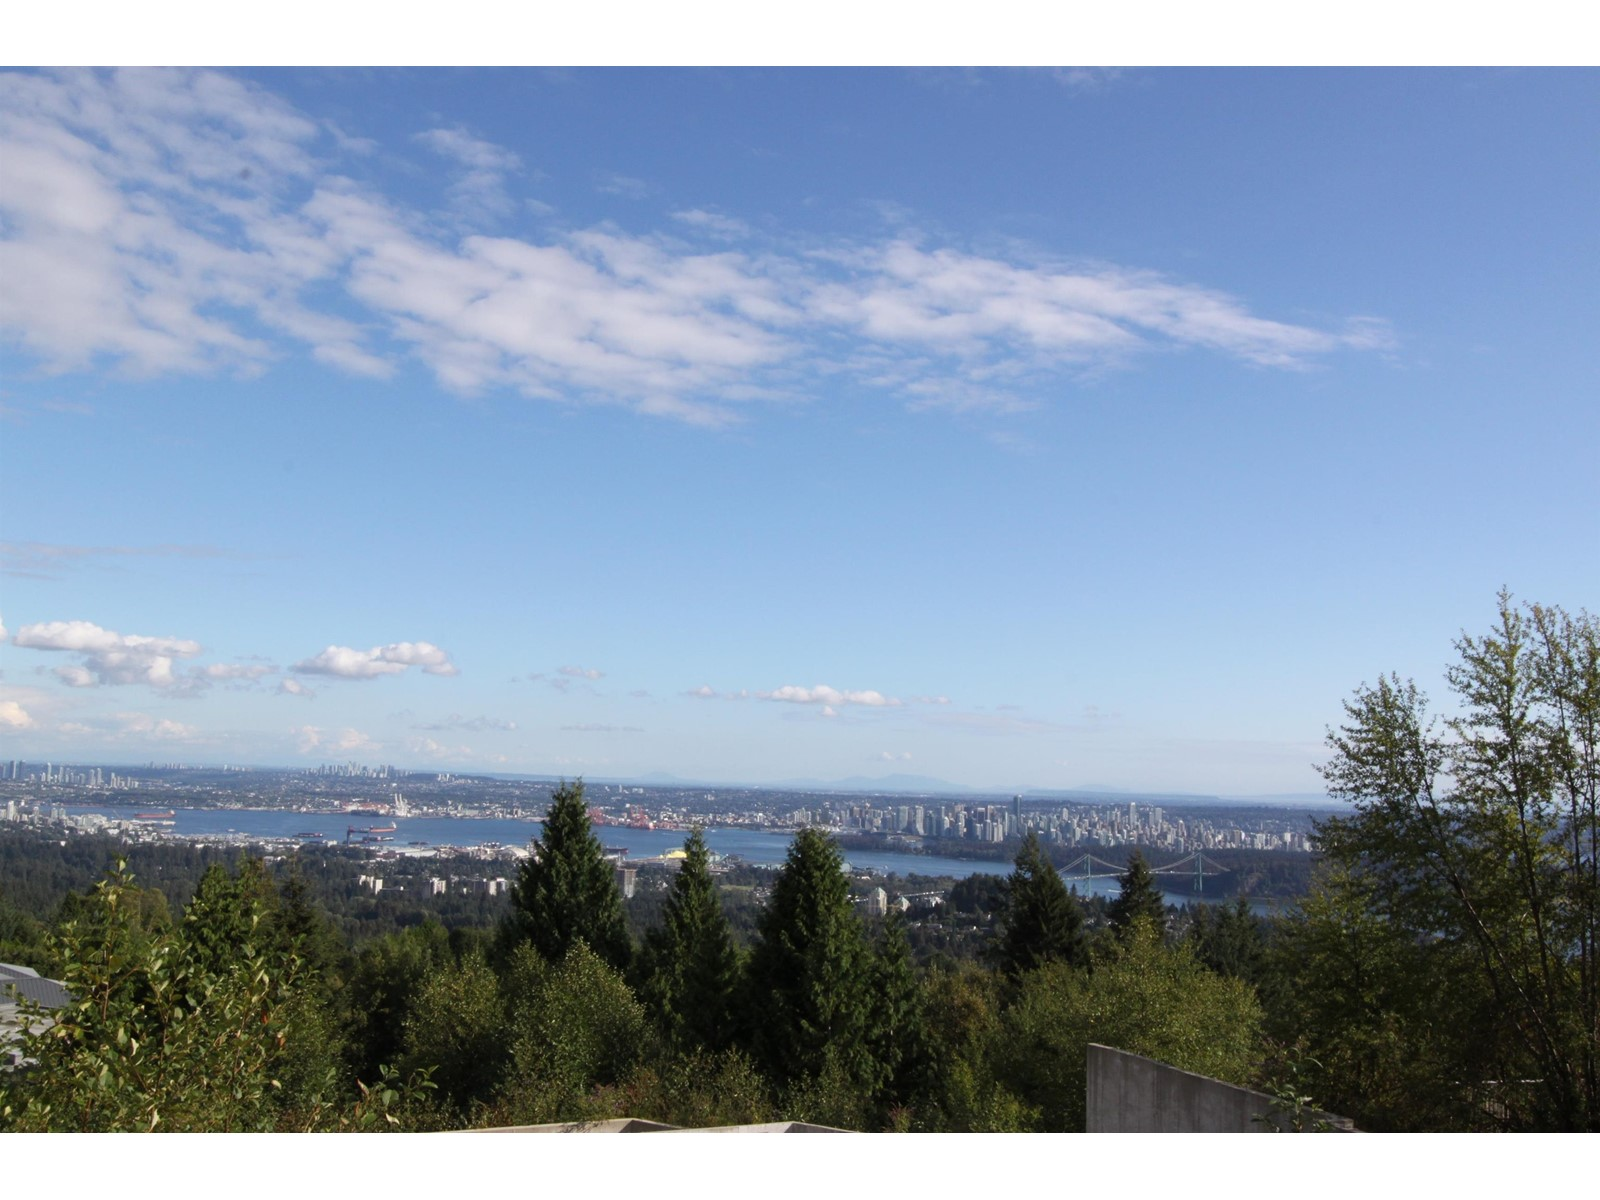 1340 CRESTWELL ROAD, west vancouver, British Columbia